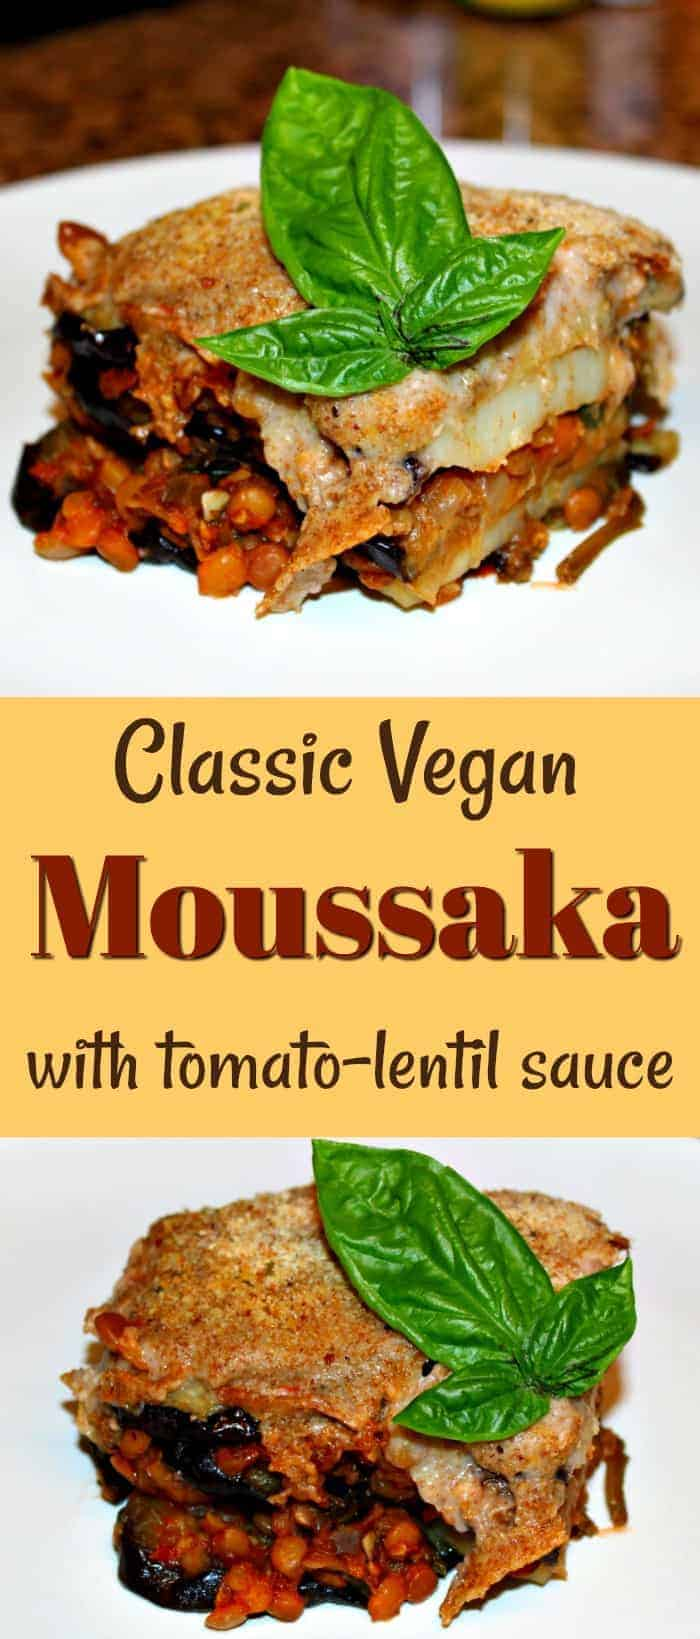 This delicious vegan moussaka is made with layers of roasted eggplant and potatoes with lentil-tomato sauce and finished with vegan bechamel sauce. A plant-based twist on a classic Greek recipe. | vegan moussaka recipe | vegan dinner recipes | vegan main course | vegan Greek recipes | plant-based recipes | oil-free recipes | wfpb recipes | #veganmoussaka #vegandinner #vegandinnerrecipes #veganfood #vegancasseroles #wfpbrecipes #vegetarianmoussaka #vegetarianrecipes